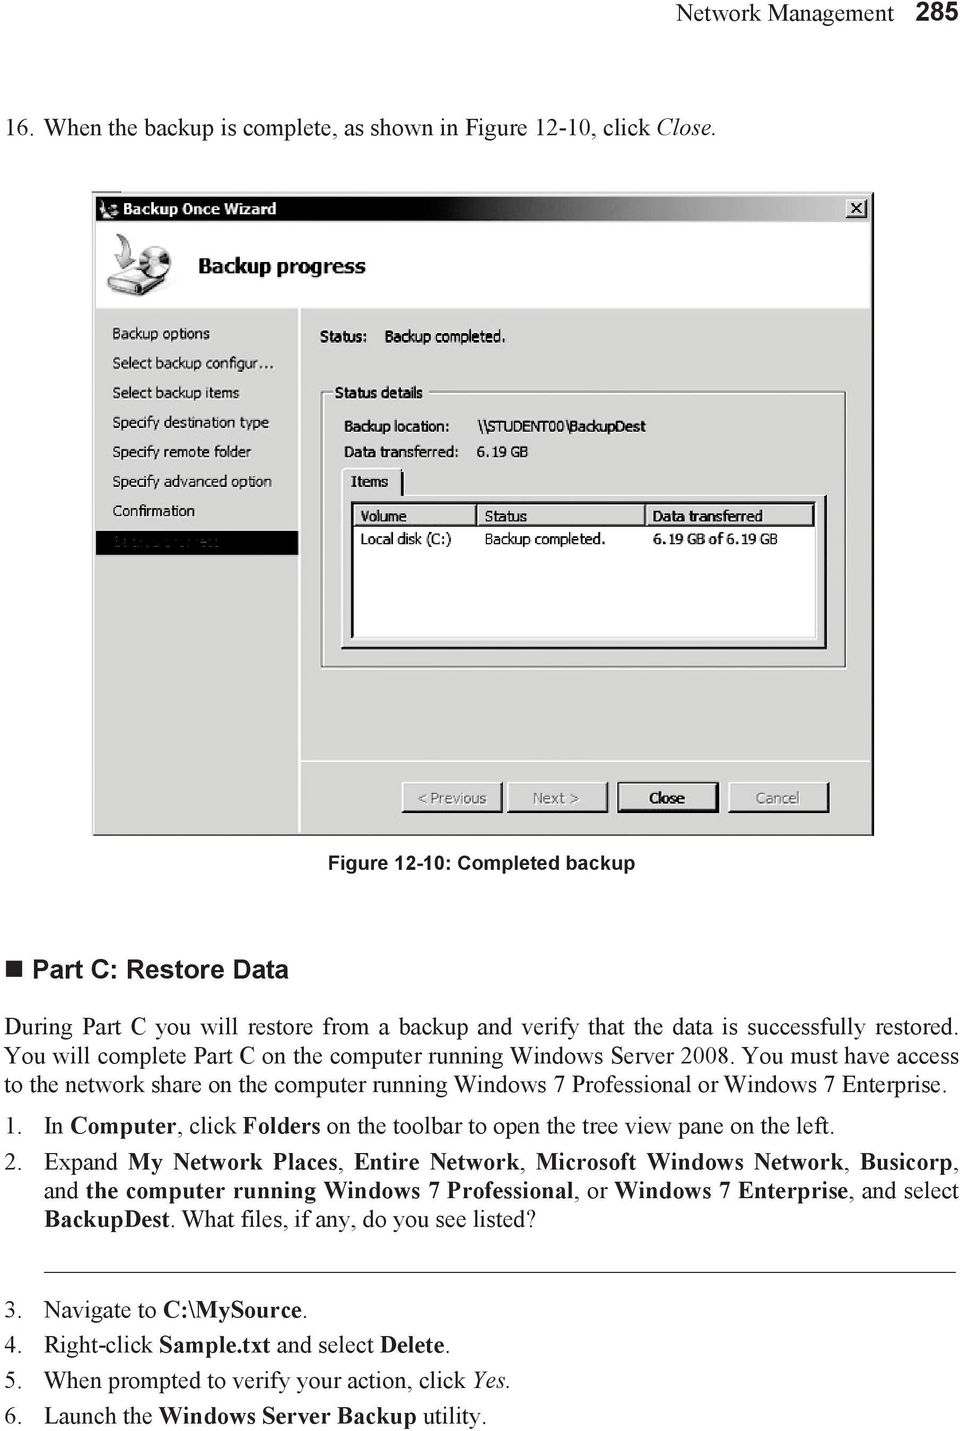 You will complete Part C on the computer running Windows Server 2008. You must have access to the network share on the computer running Windows 7 Professional or Windows 7 Enterprise. 1.